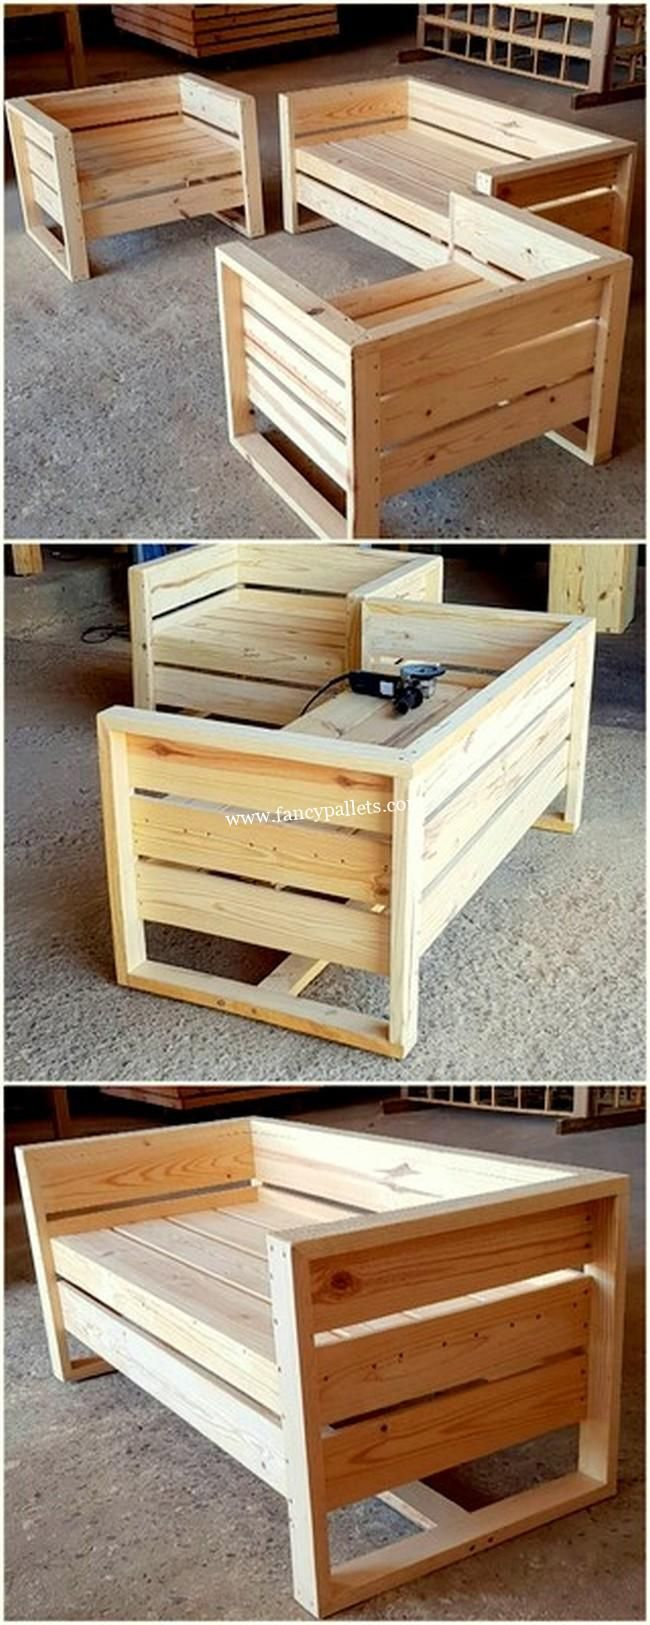 DIY Pallet Wood Furniture Ideas Designed With Reused Material - Fancy Pallets -  - #woodworking #woodpalletfurniture